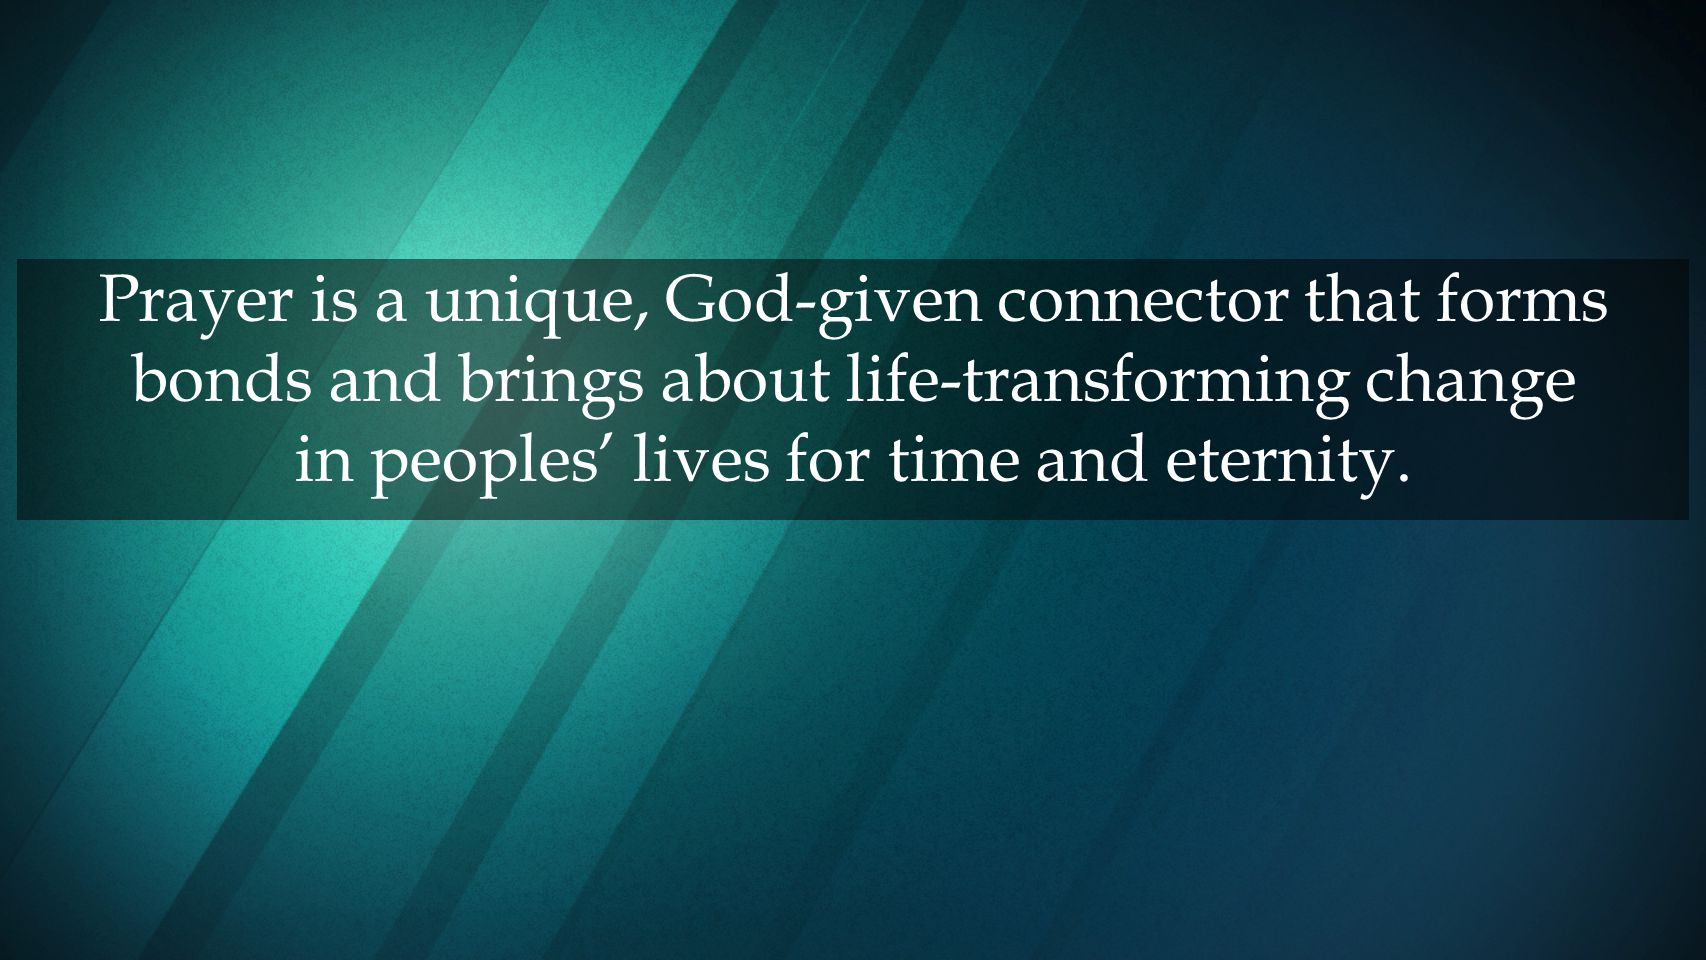 Prayer is a unique, God-given connector that forms bonds and brings about life-transforming change in peoples' lives for time and eternity.